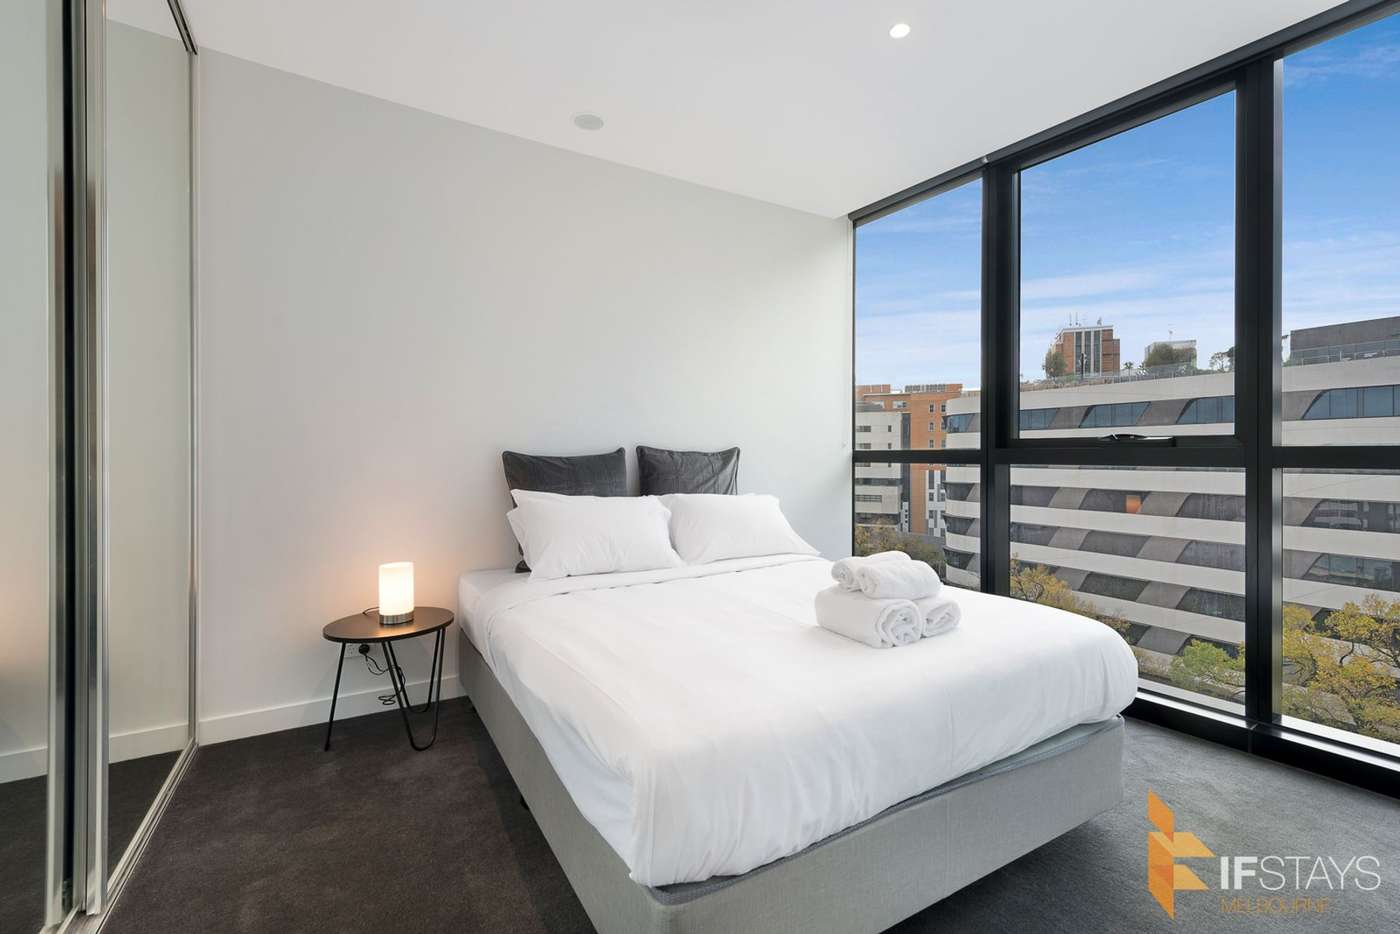 Sixth view of Homely apartment listing, 729/23 Blackwood Street, North Melbourne VIC 3051